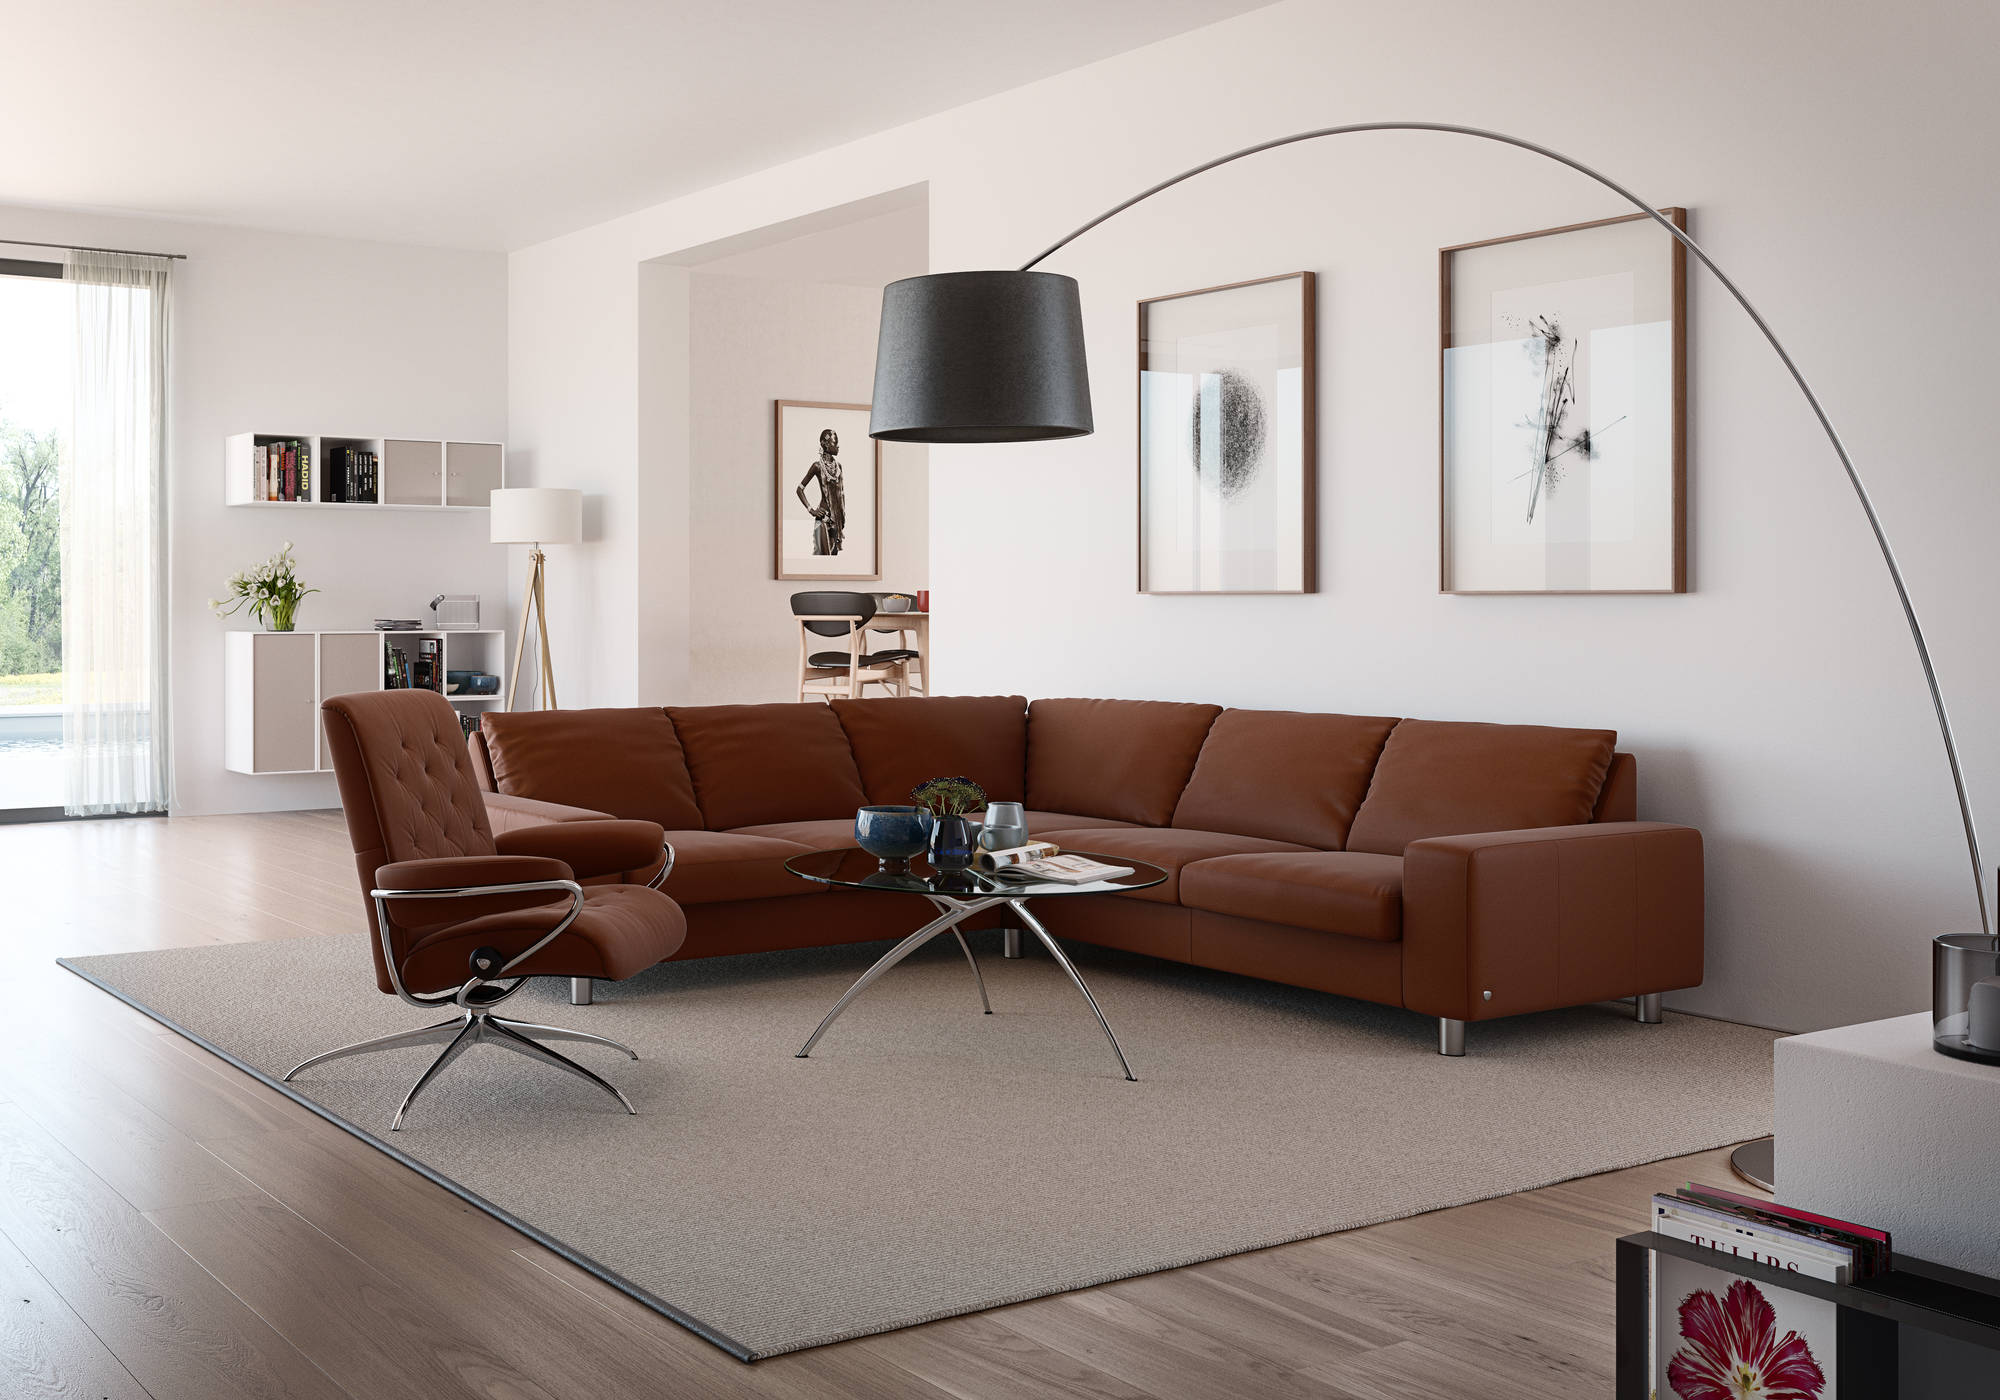 5 Tips For Decorating With Brown Leather Furniture Blog